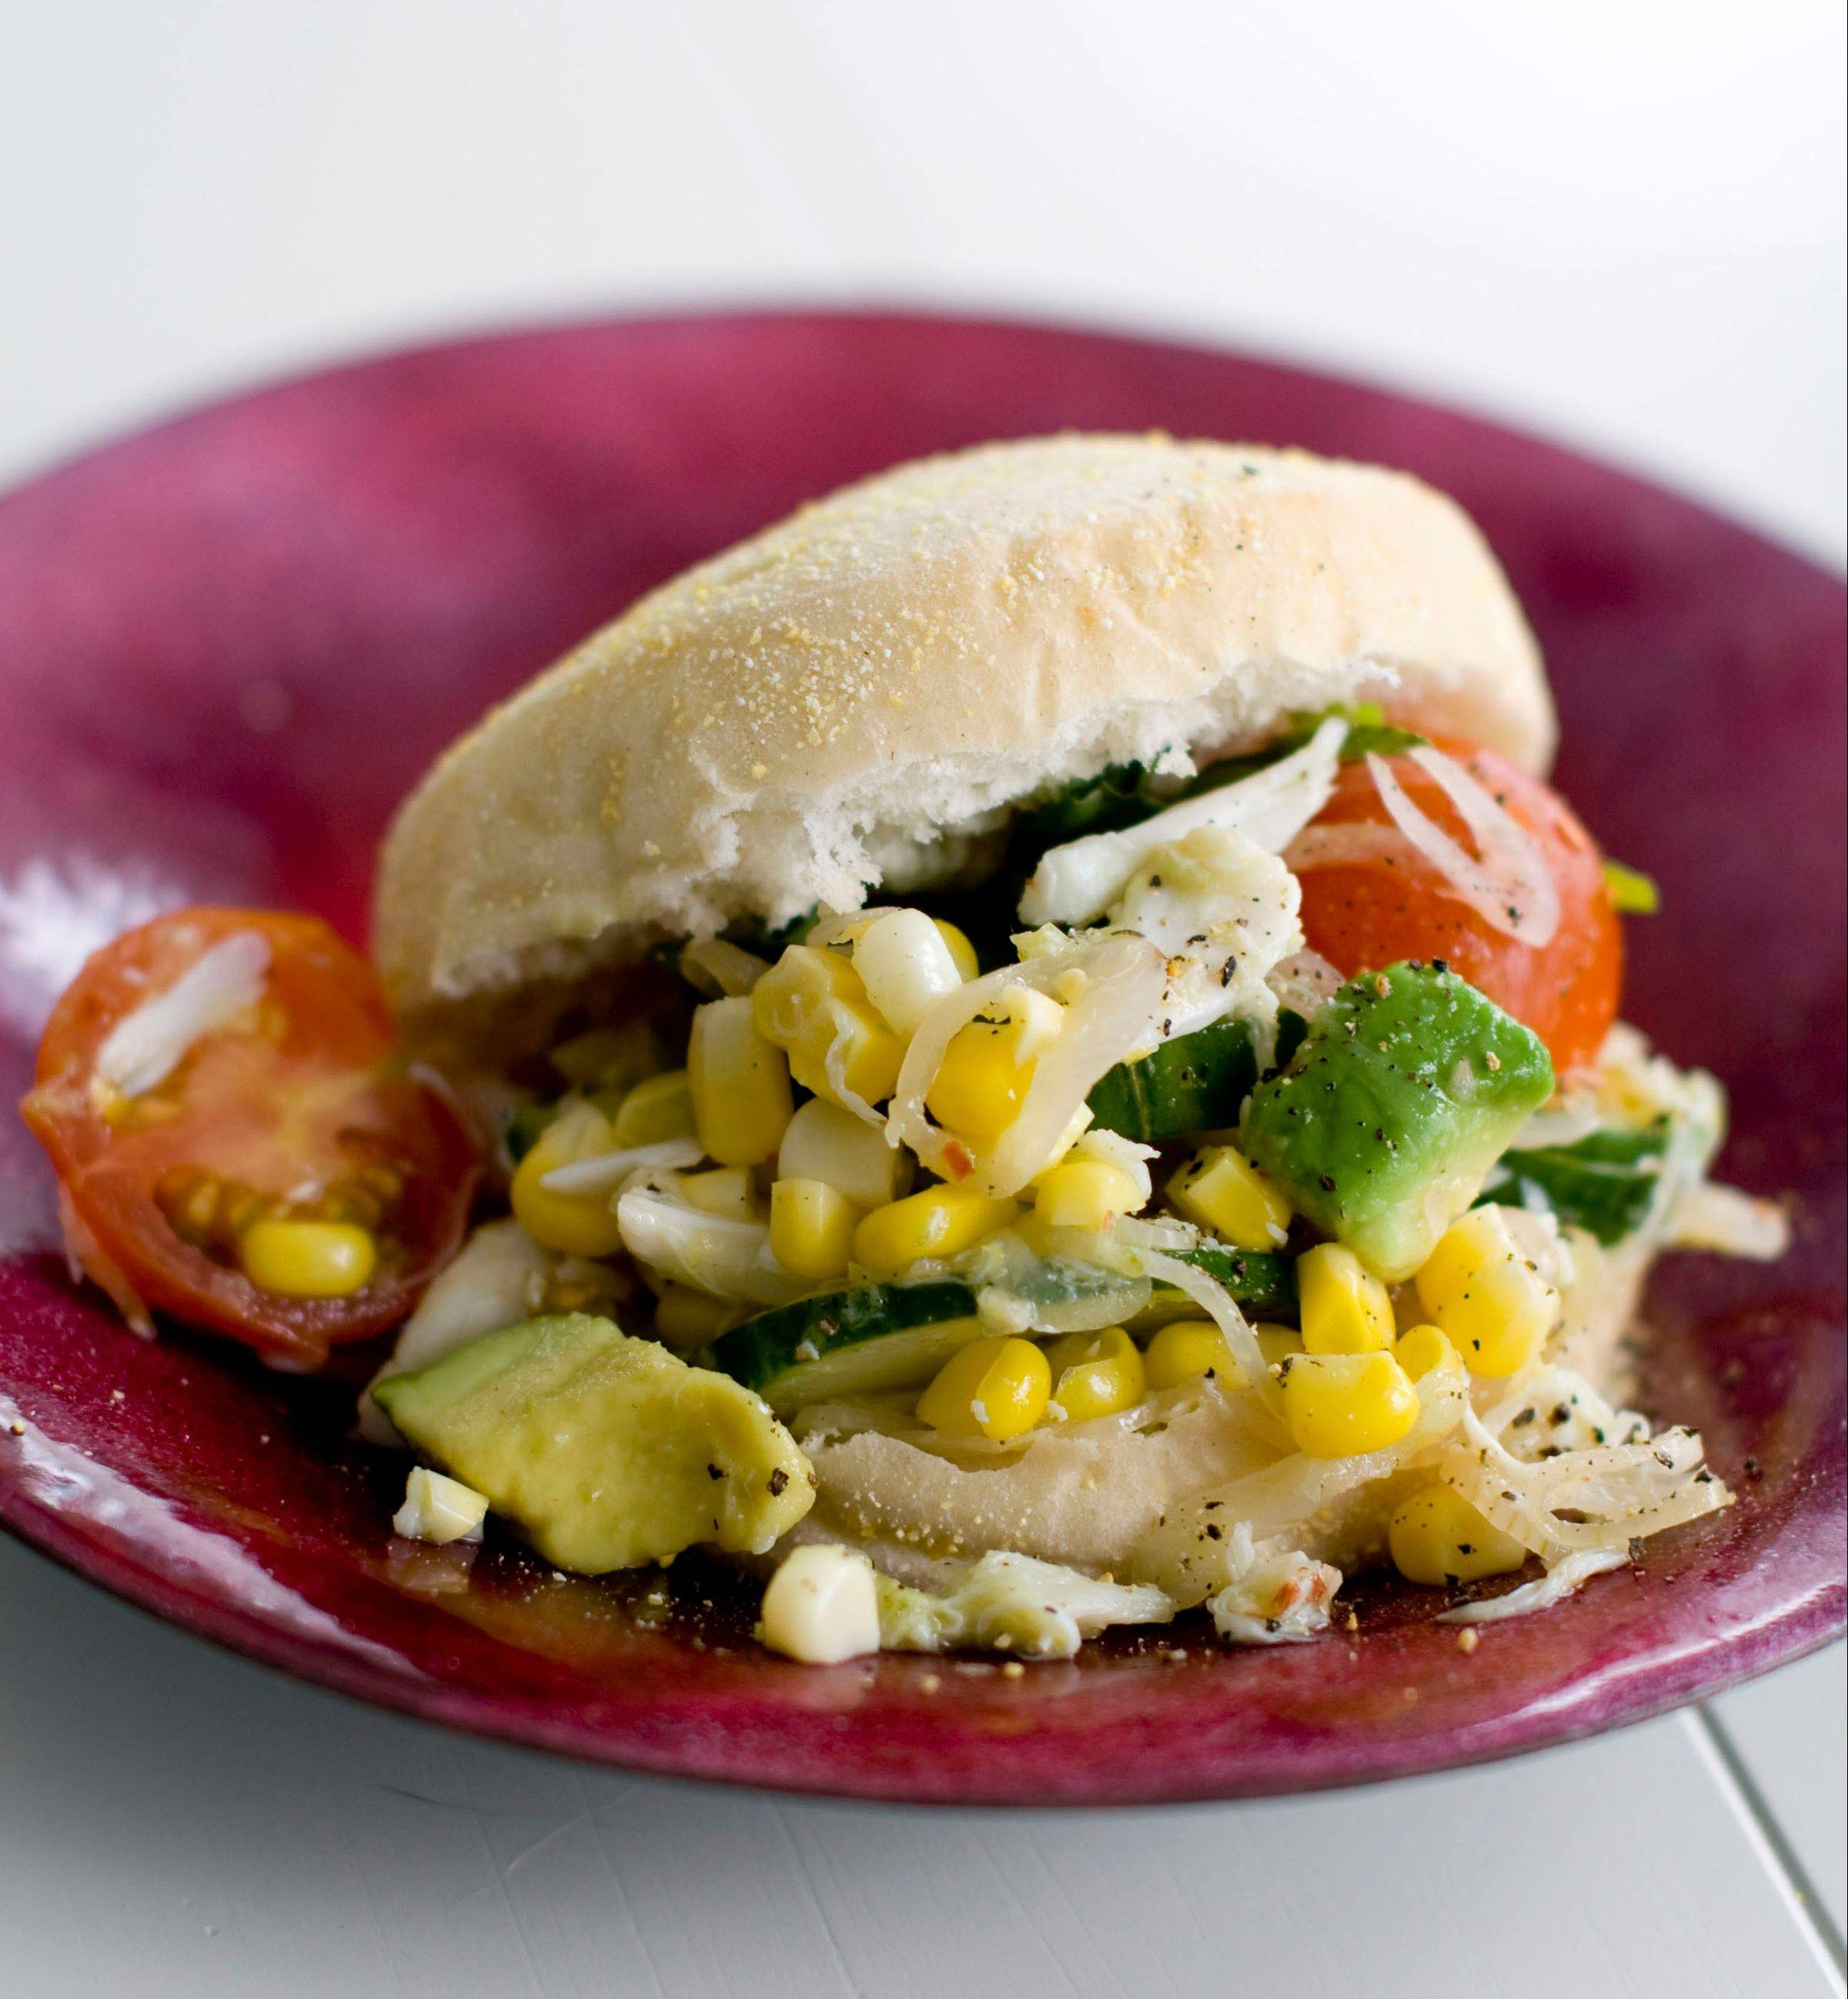 Seamus Mullen�s simple summer salad of corn and jumbo lump crabmeat can be enjoyed in a bowl or on a bun.